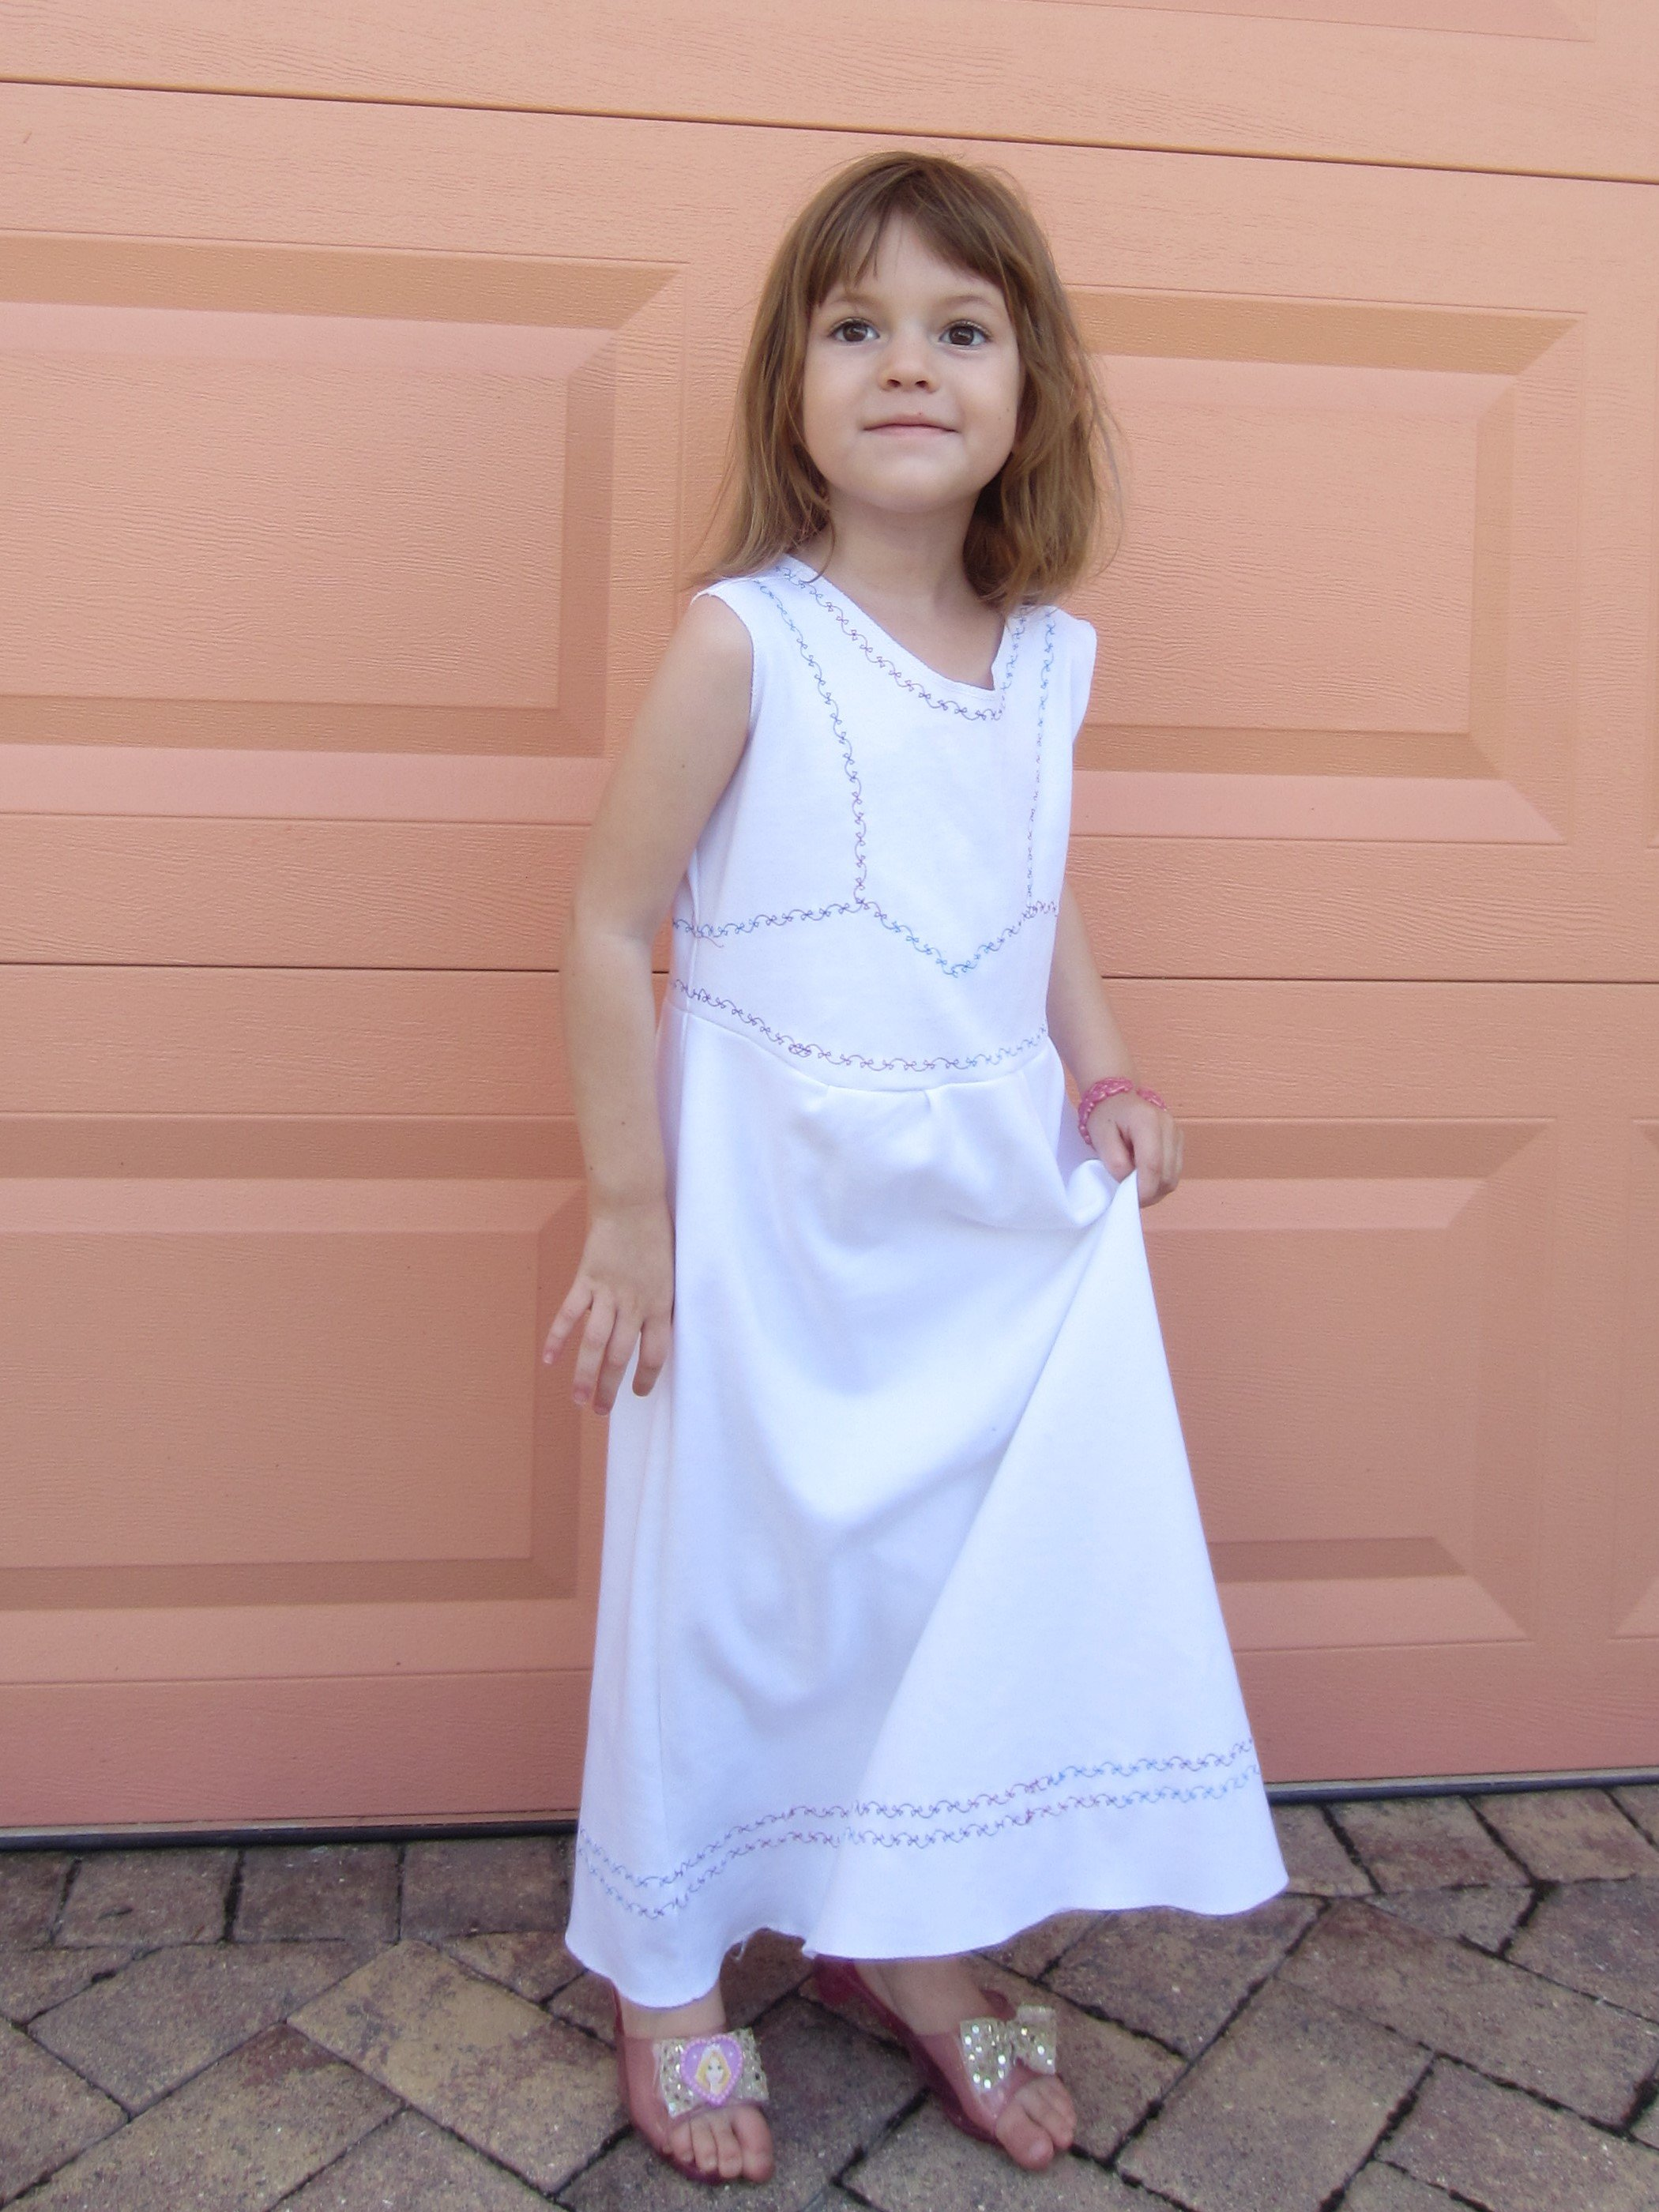 Sewing for Amelie, Sofia the First, Reverse applique organic knit dress and underslip, Sew Pomona